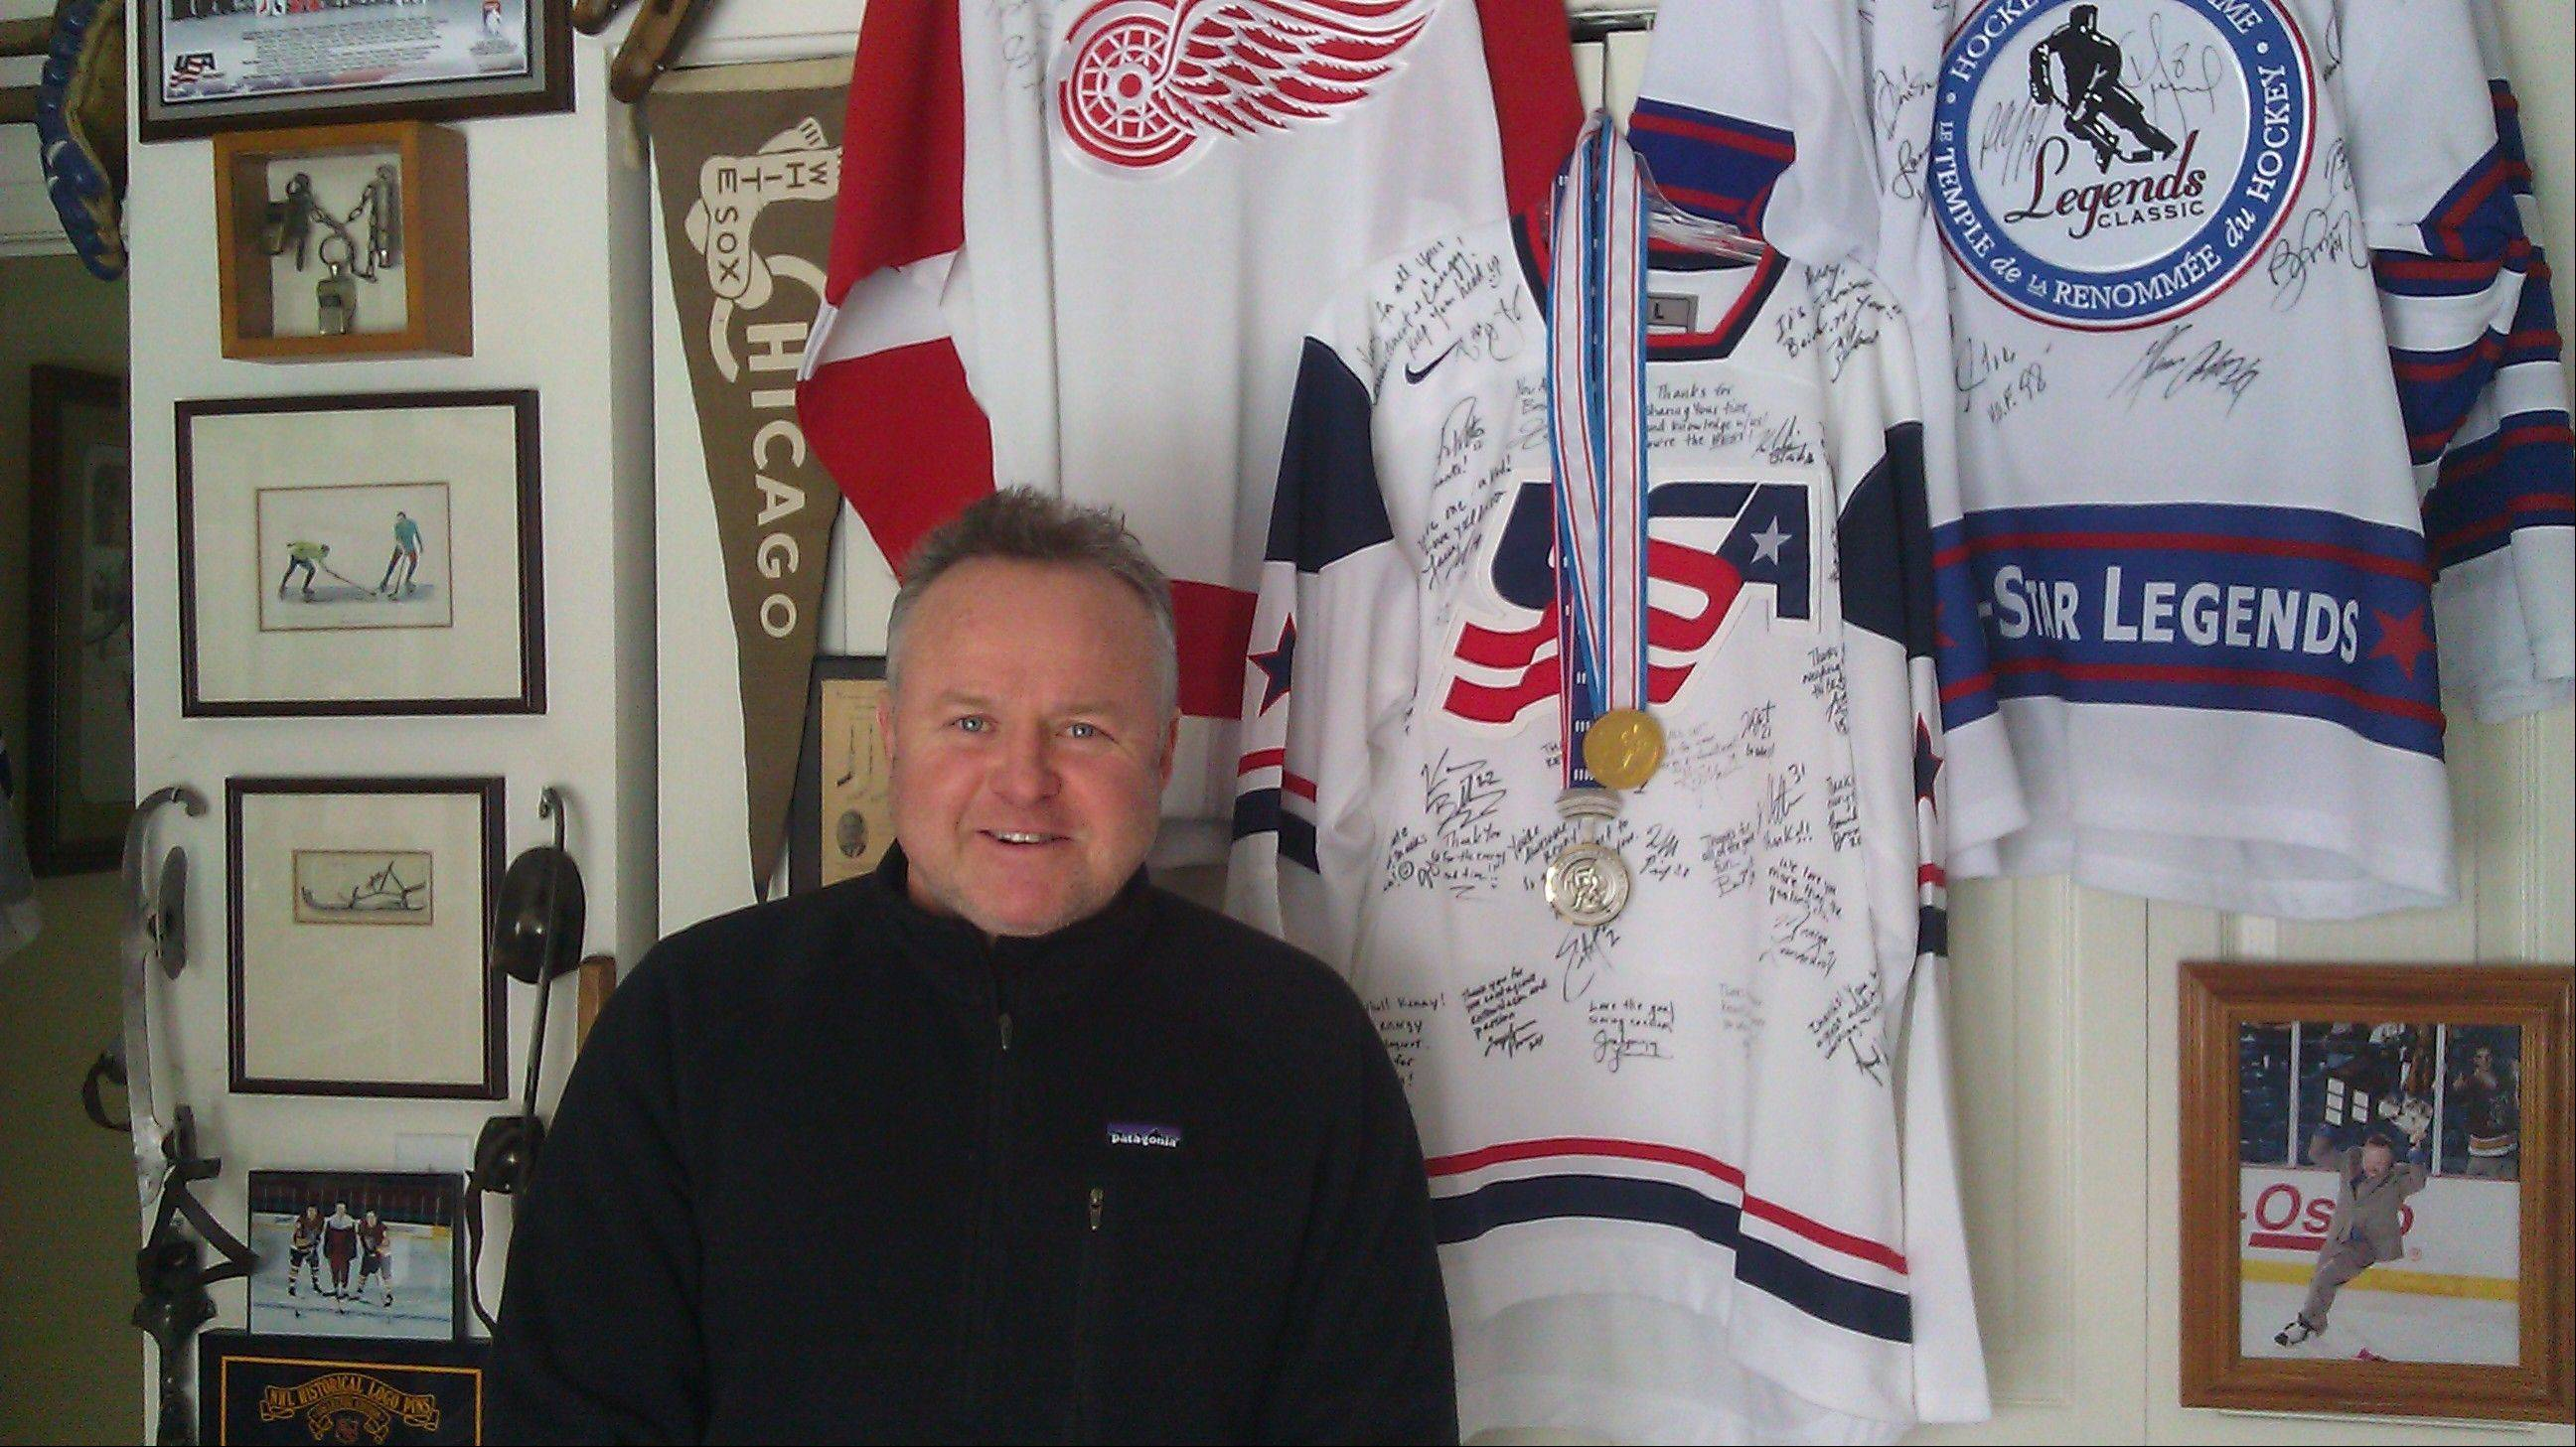 Surrounded by a lifetime of hockey memories, Kenny McCudden, the skating and skills coach for the Chicago Wolves, has more memories coming his way as he heads to Sochi to help the U.S. women's Olympic team go for a medal this month.